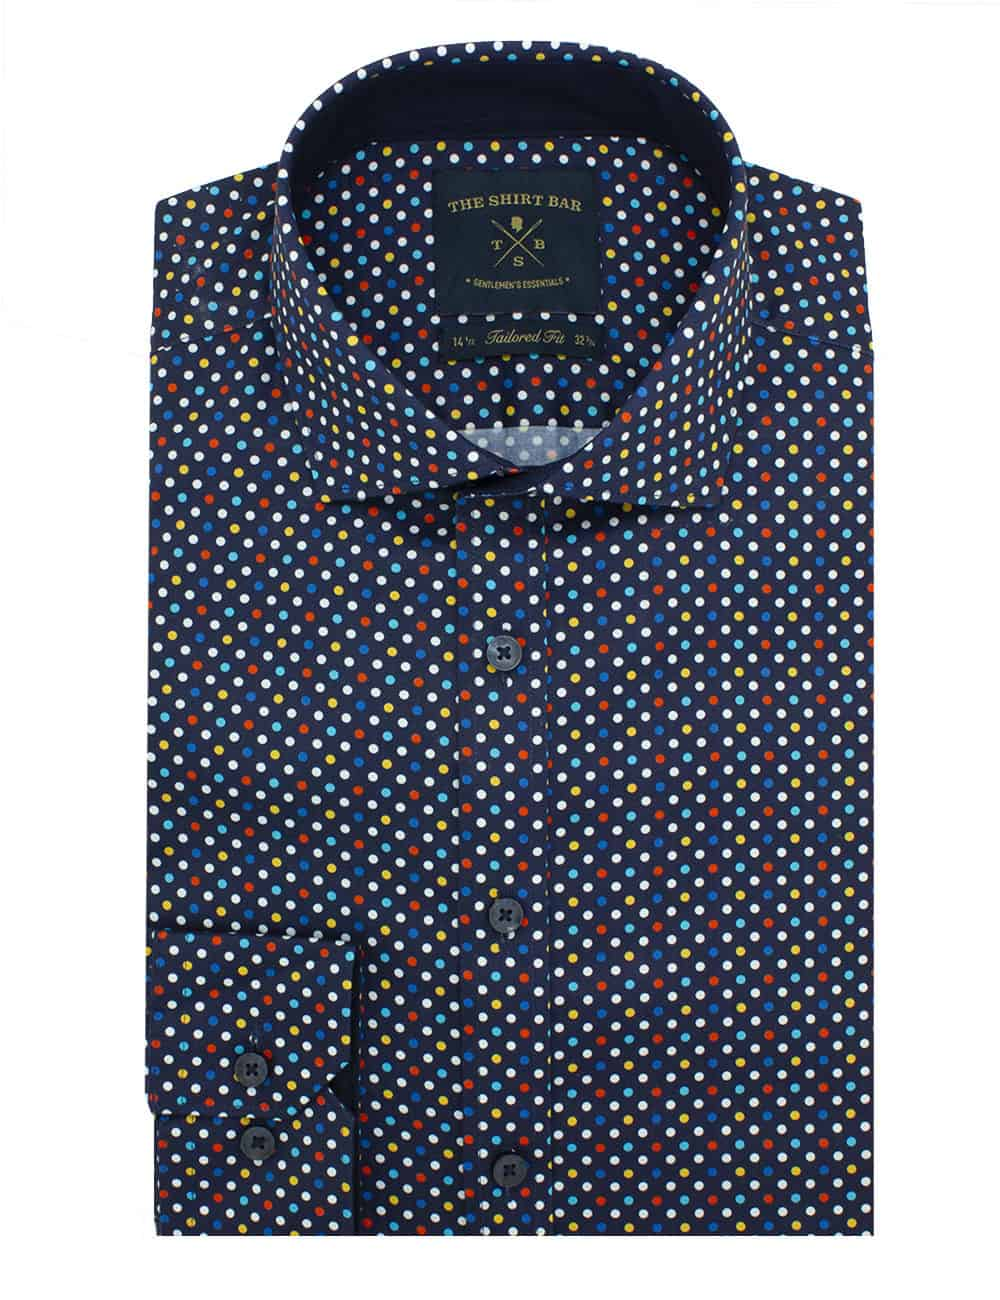 Tailored Fit 100% Premium Cotton Sateen Long Sleeve Single Cuff Men's Shirt (Digitally Printed)